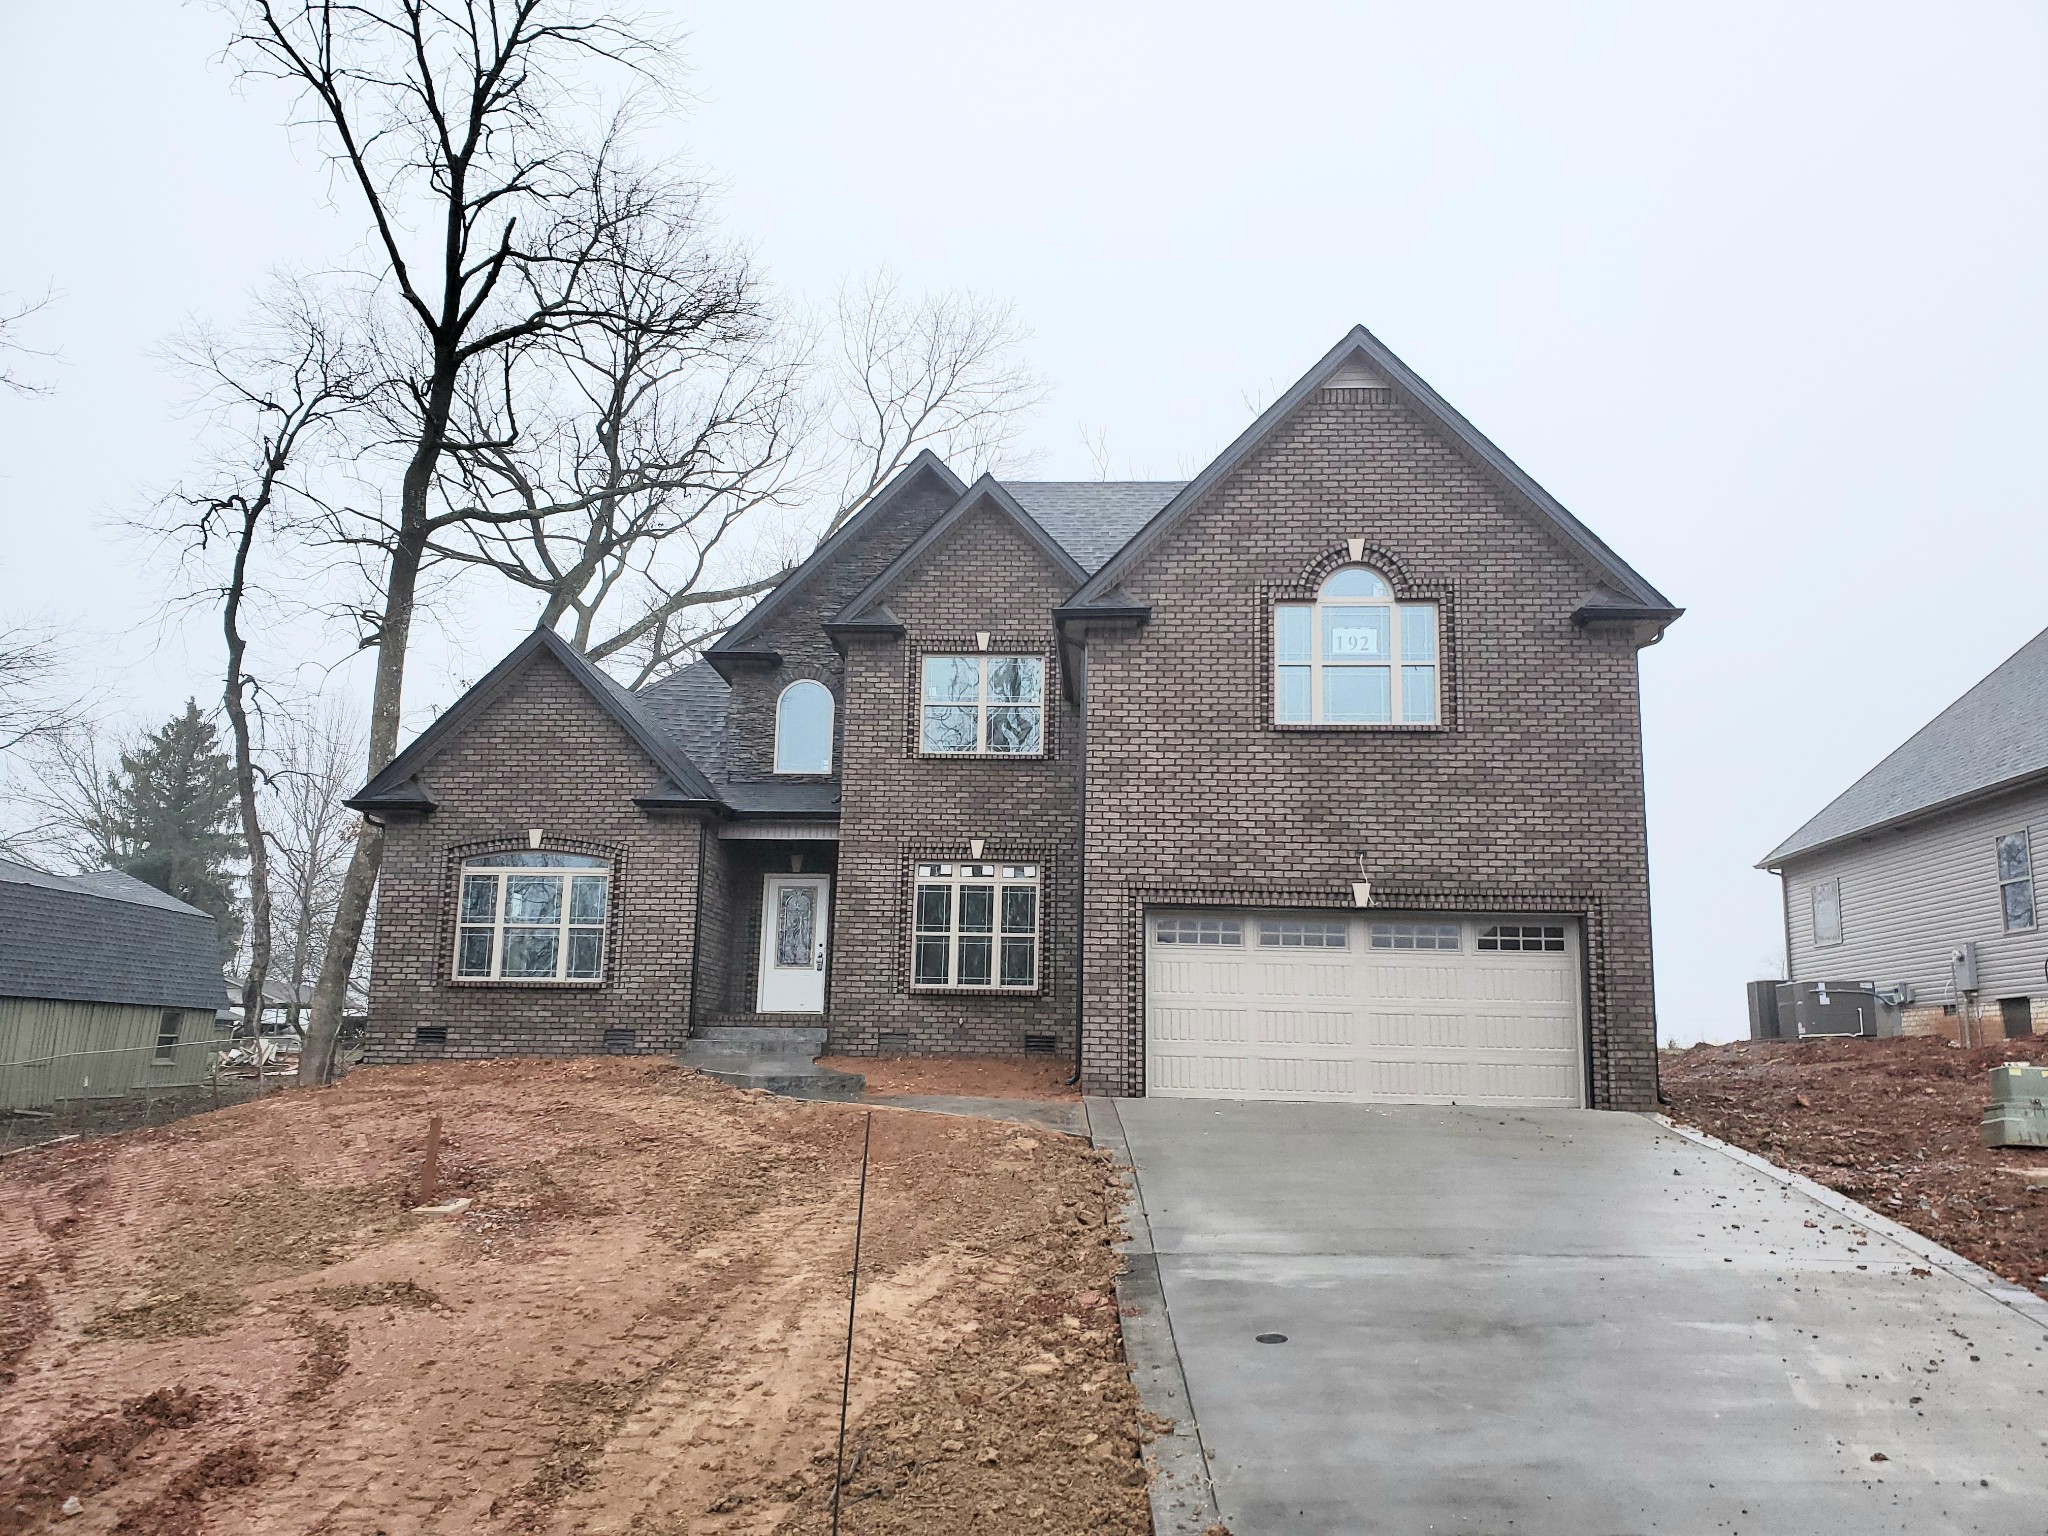 192 Timber Springs, Clarksville, TN 37042 - Clarksville, TN real estate listing